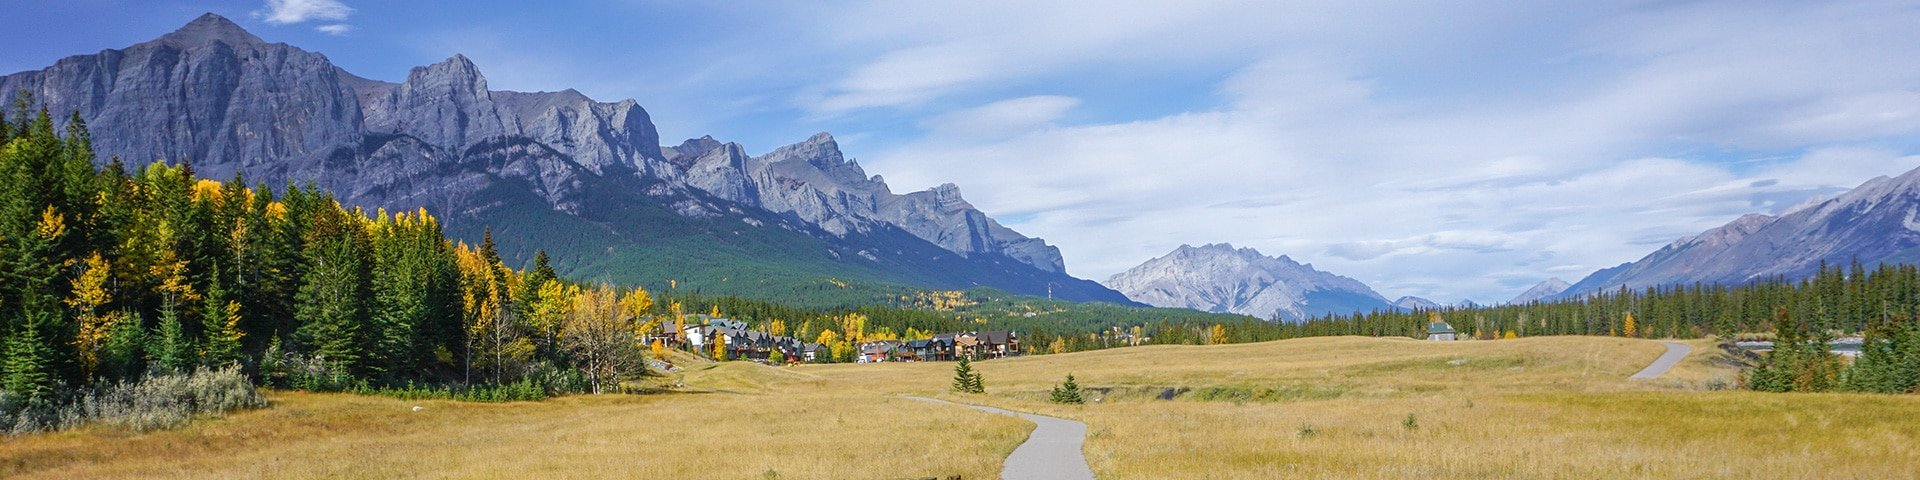 Panorama of the Bow River trail hike in Canmore, the Canadian Rockies